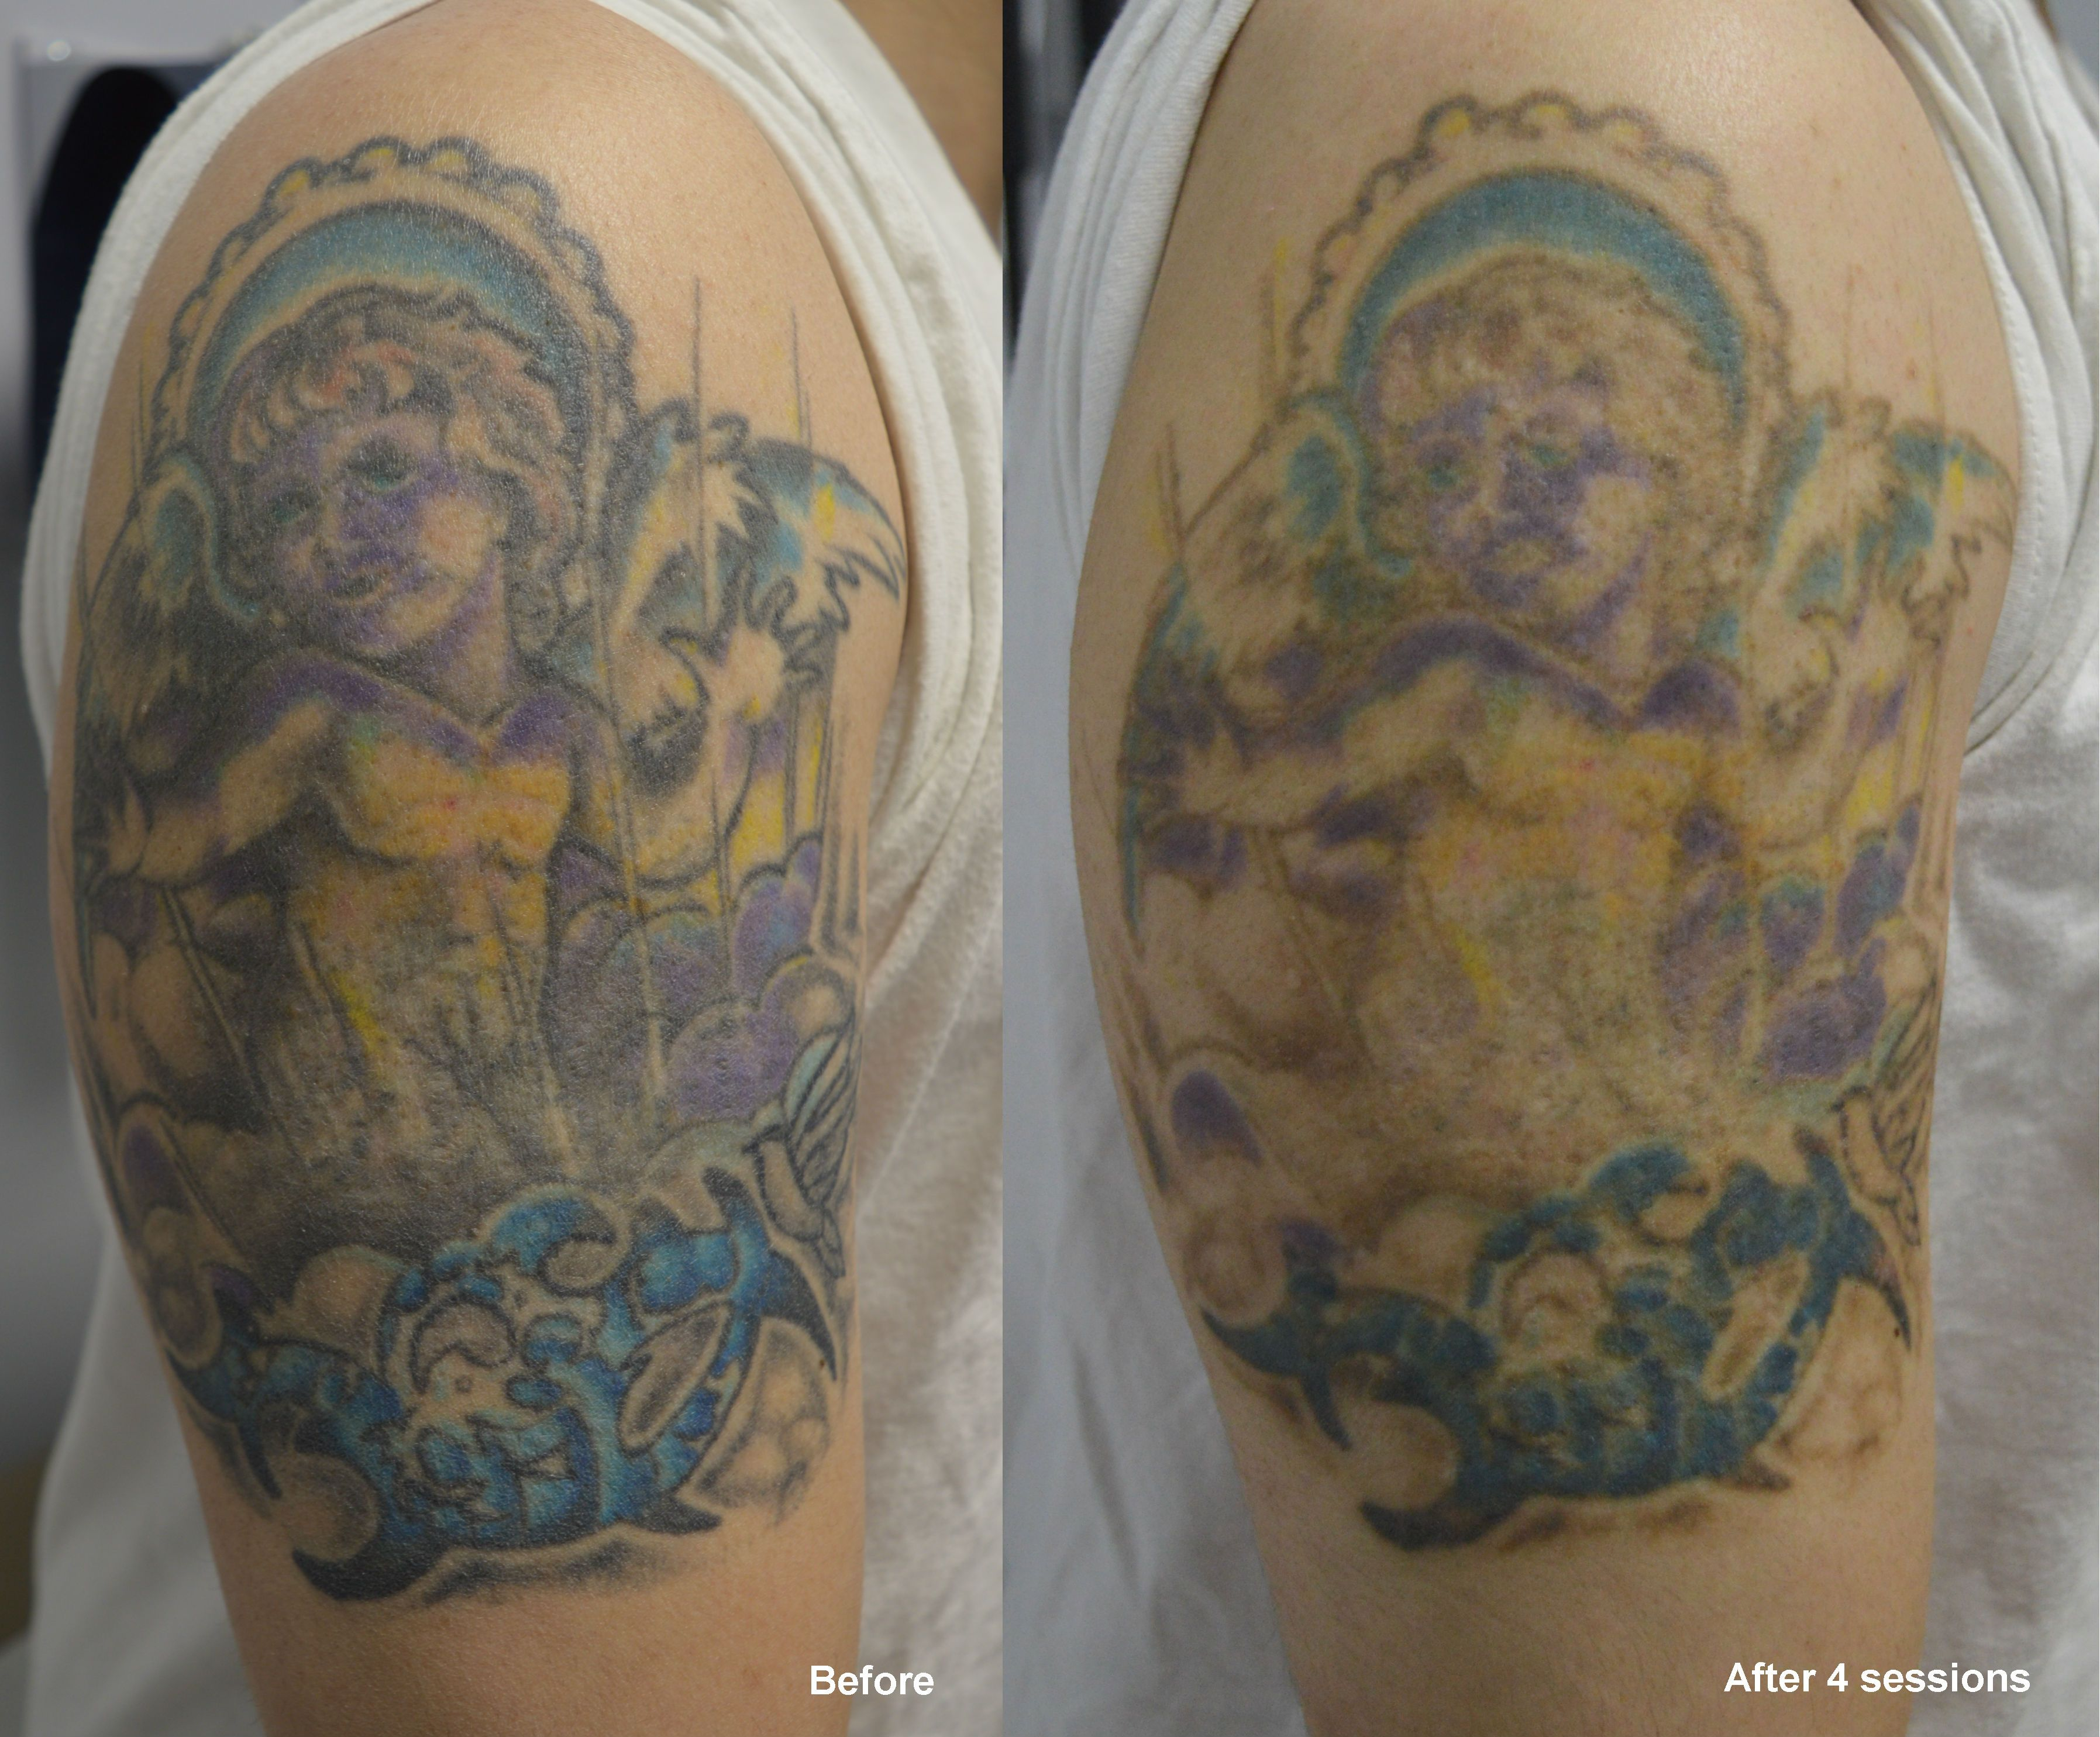 Upper arm tattoo after 4 sessions LaserTattooRemoval